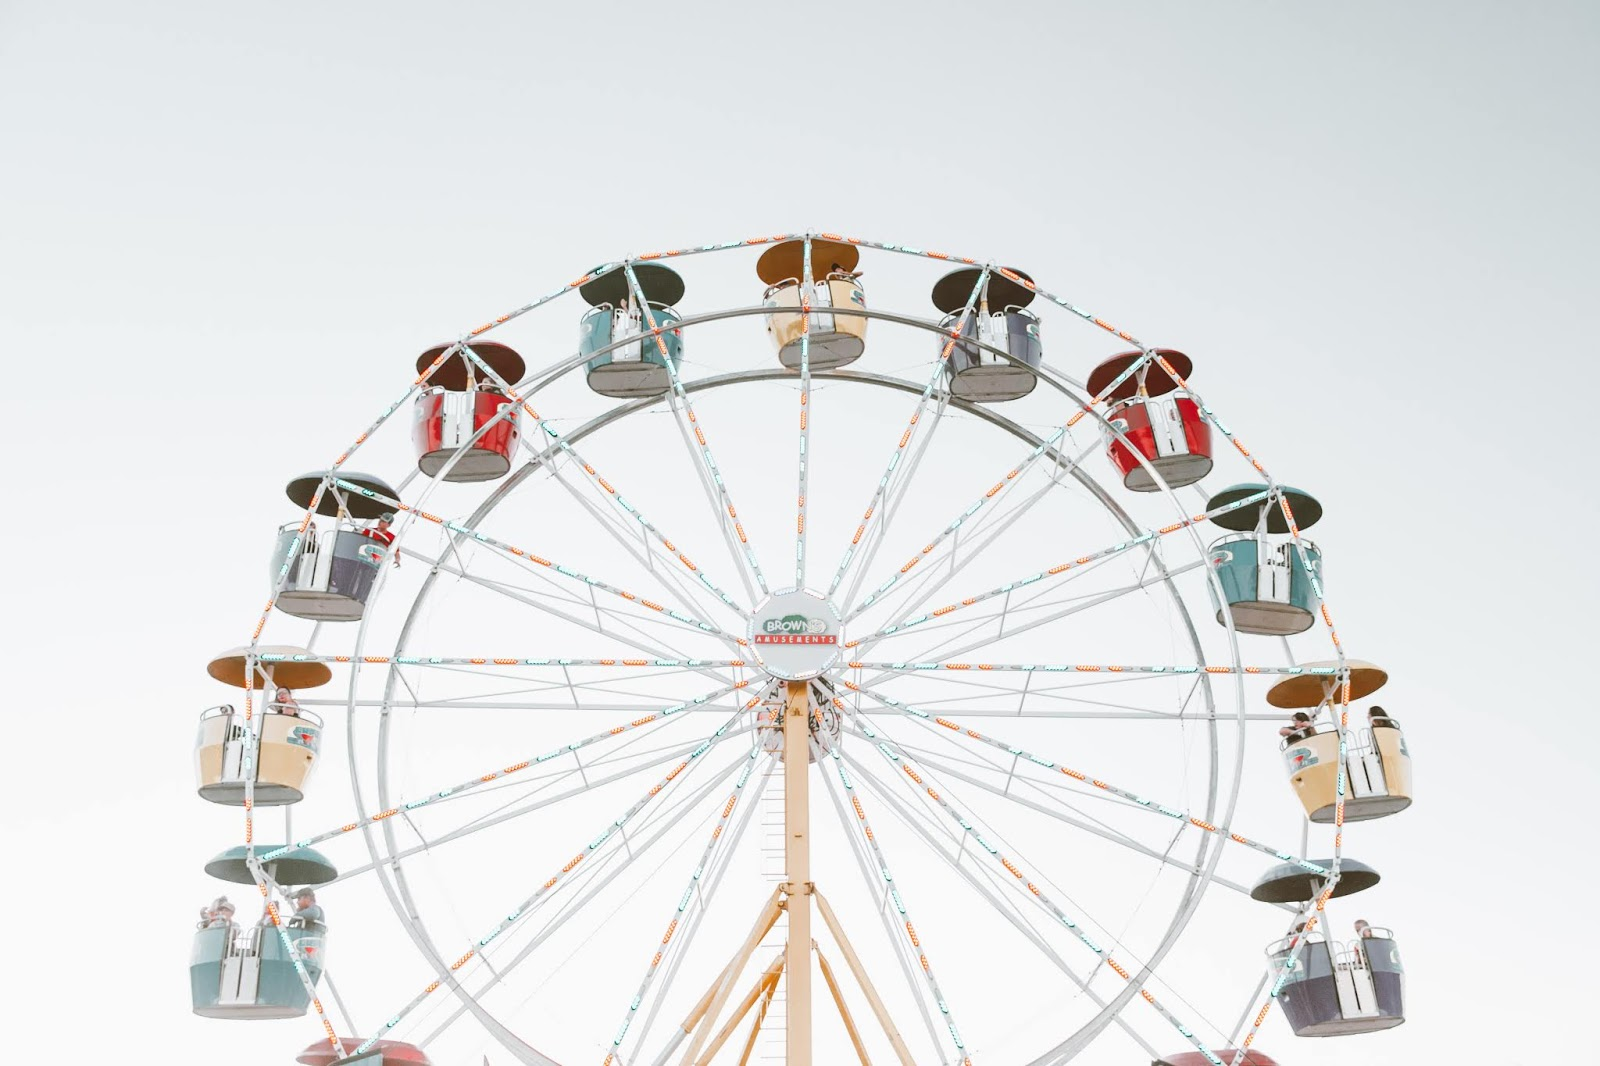 Shelly Stuckman, Yavapai County Fair, fall style 2018, Ferris wheel, ArizonaGirl.com